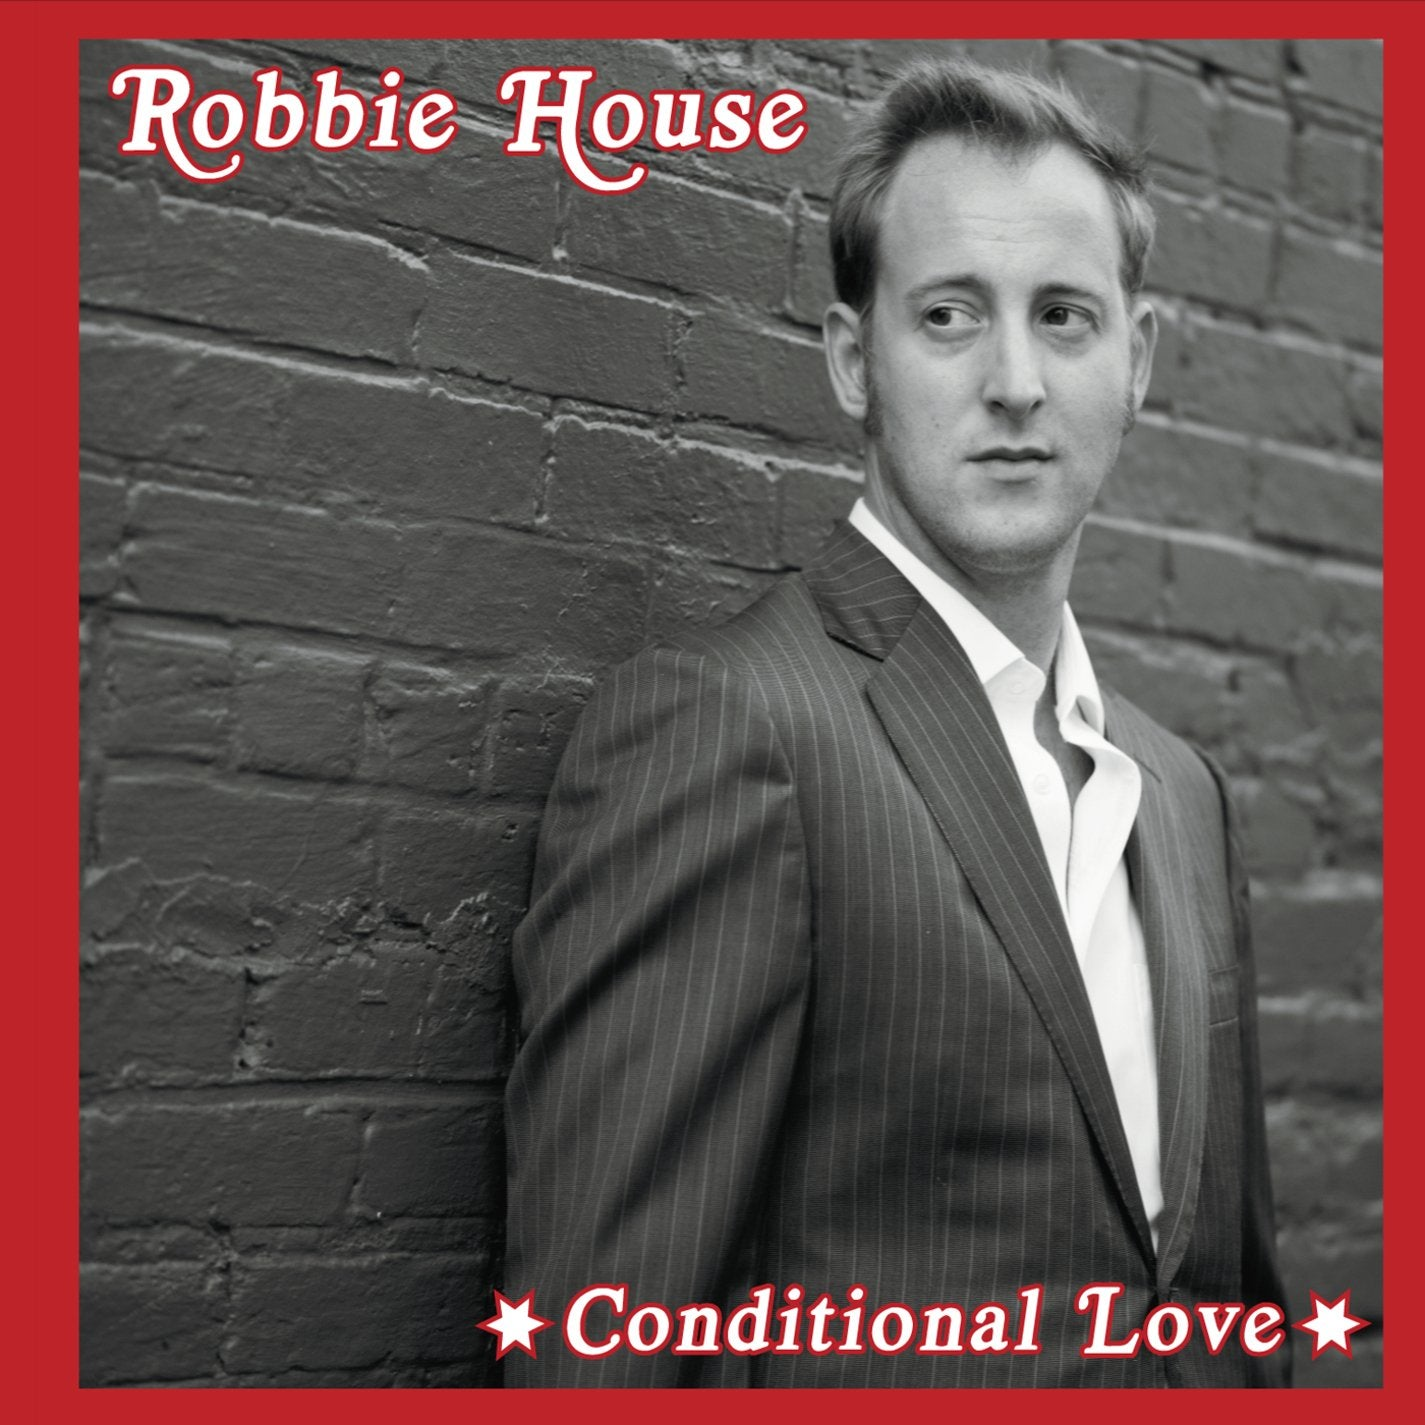 Robbie House - Conditional Love